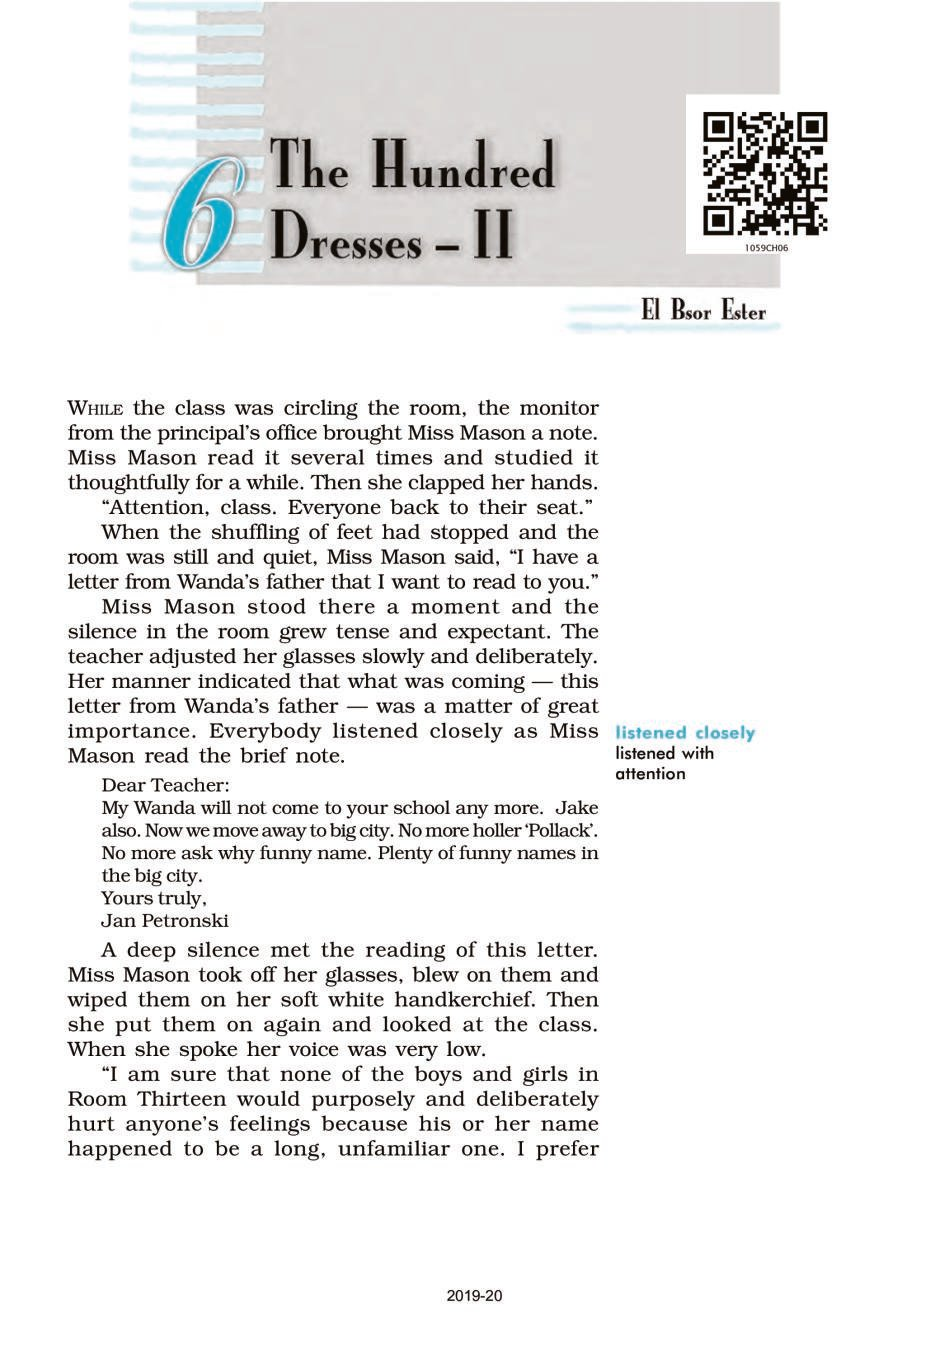 NCERT Book Class 10 English (First Flight) Chapter 6 The Hundred Dresses - II; Animals - Page 1